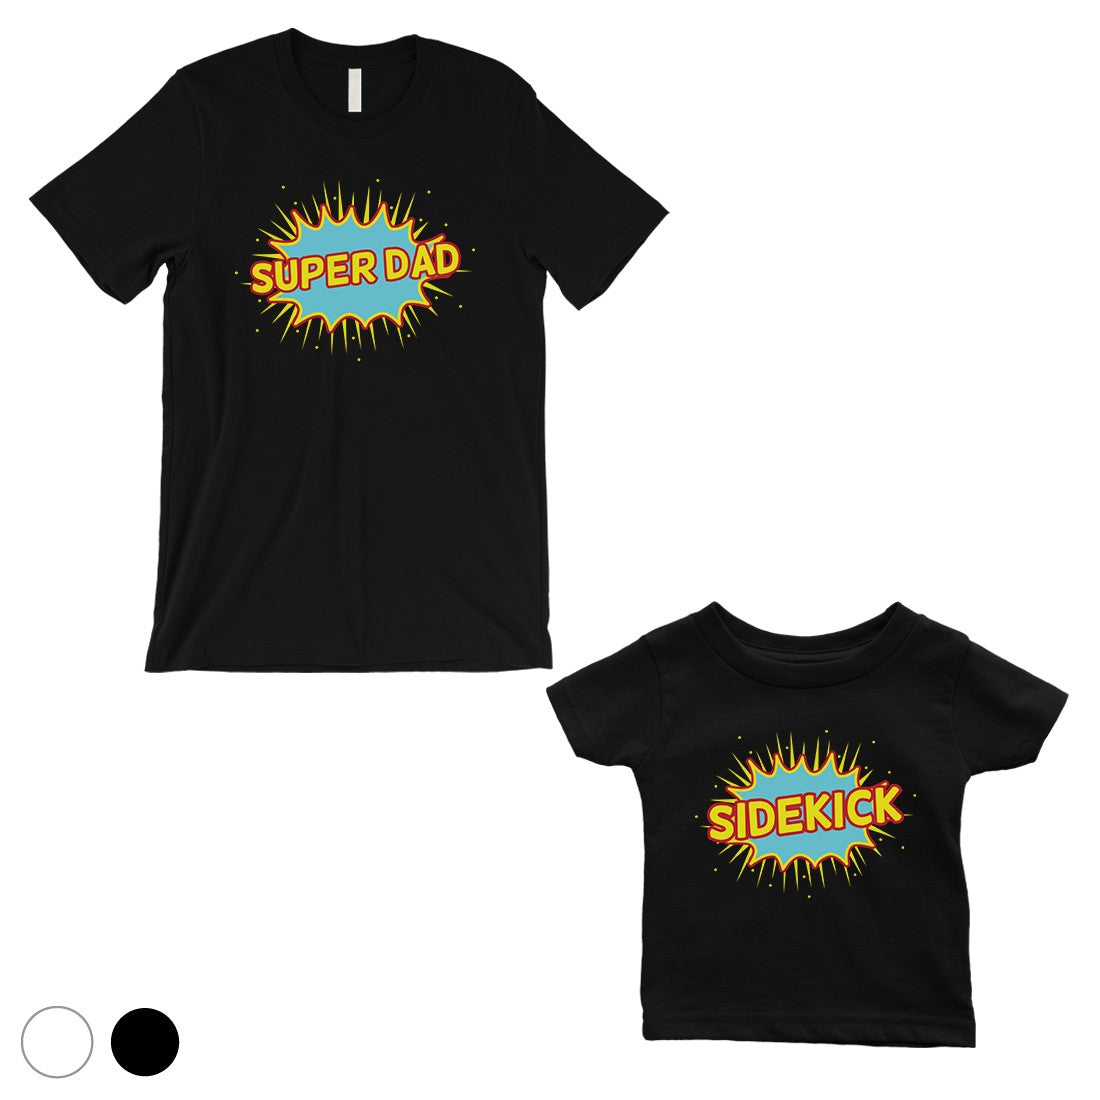 573dd8968 Cute Baby T-shirts & Tees - Unique Design Tops for Baby   365 In ...